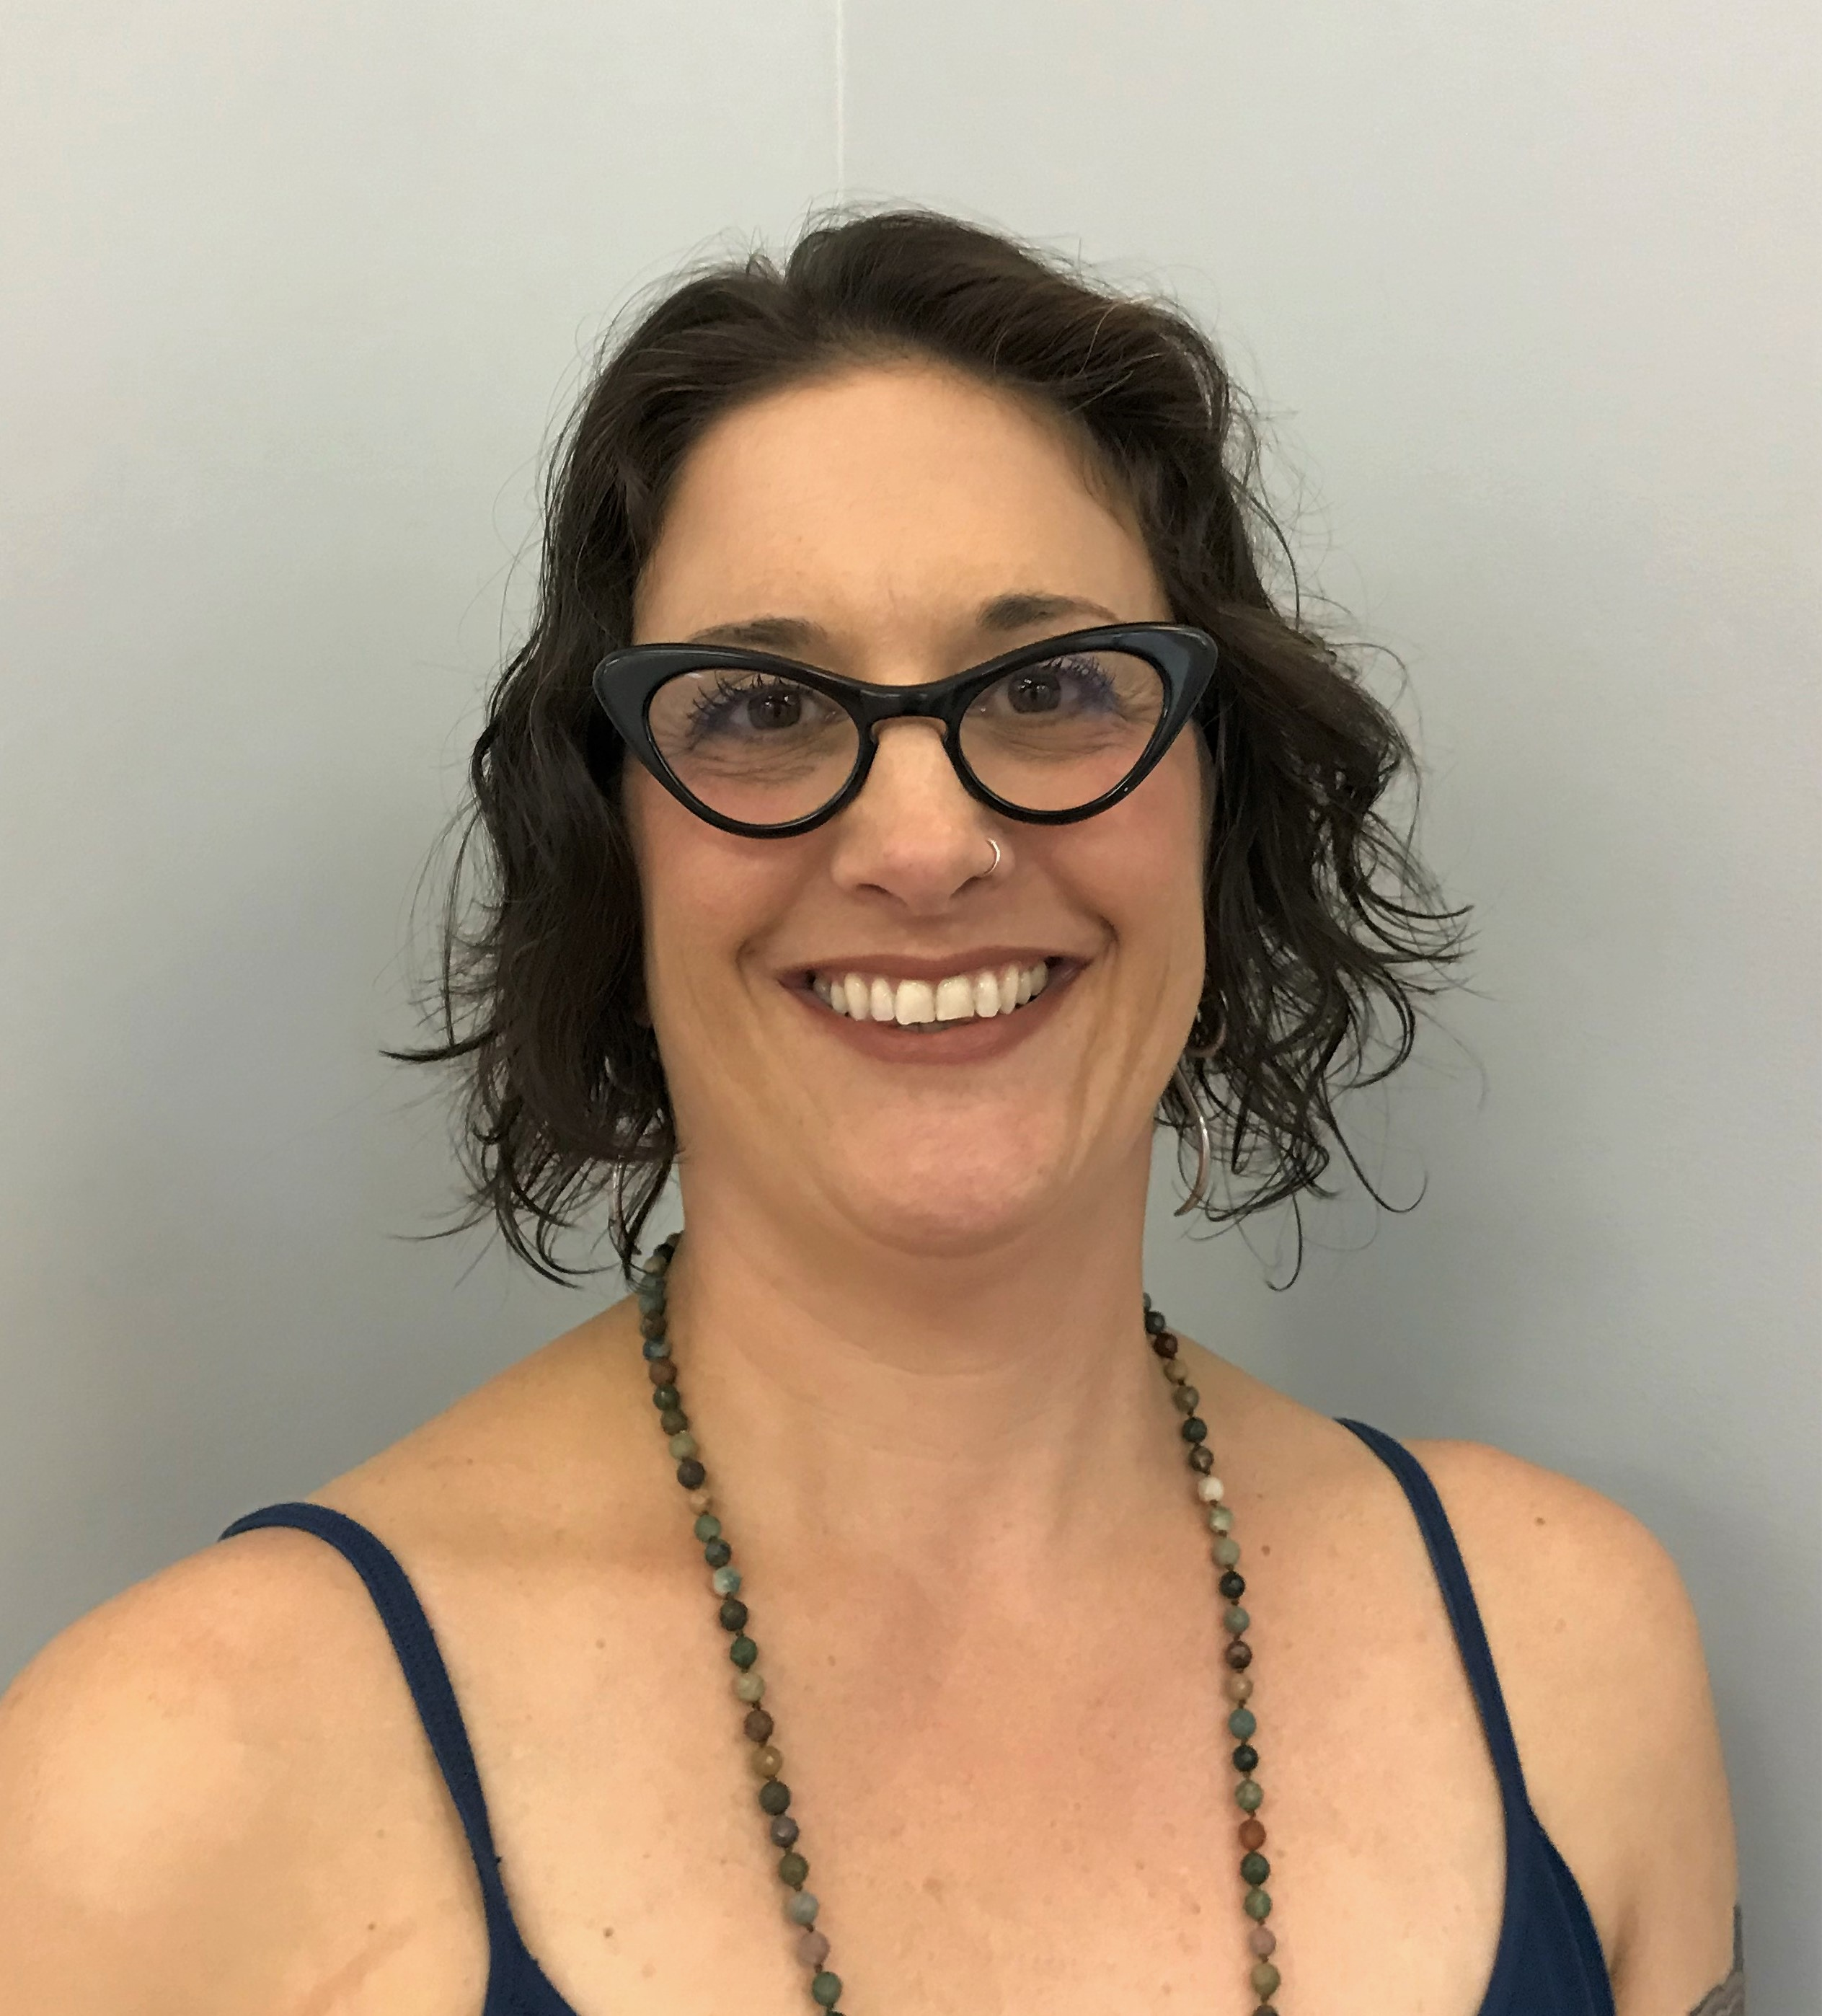 Healing Yoga for Cancer Weekend Intensive with Cheryl Fenner Brown, C-IAYT, ERYT 500